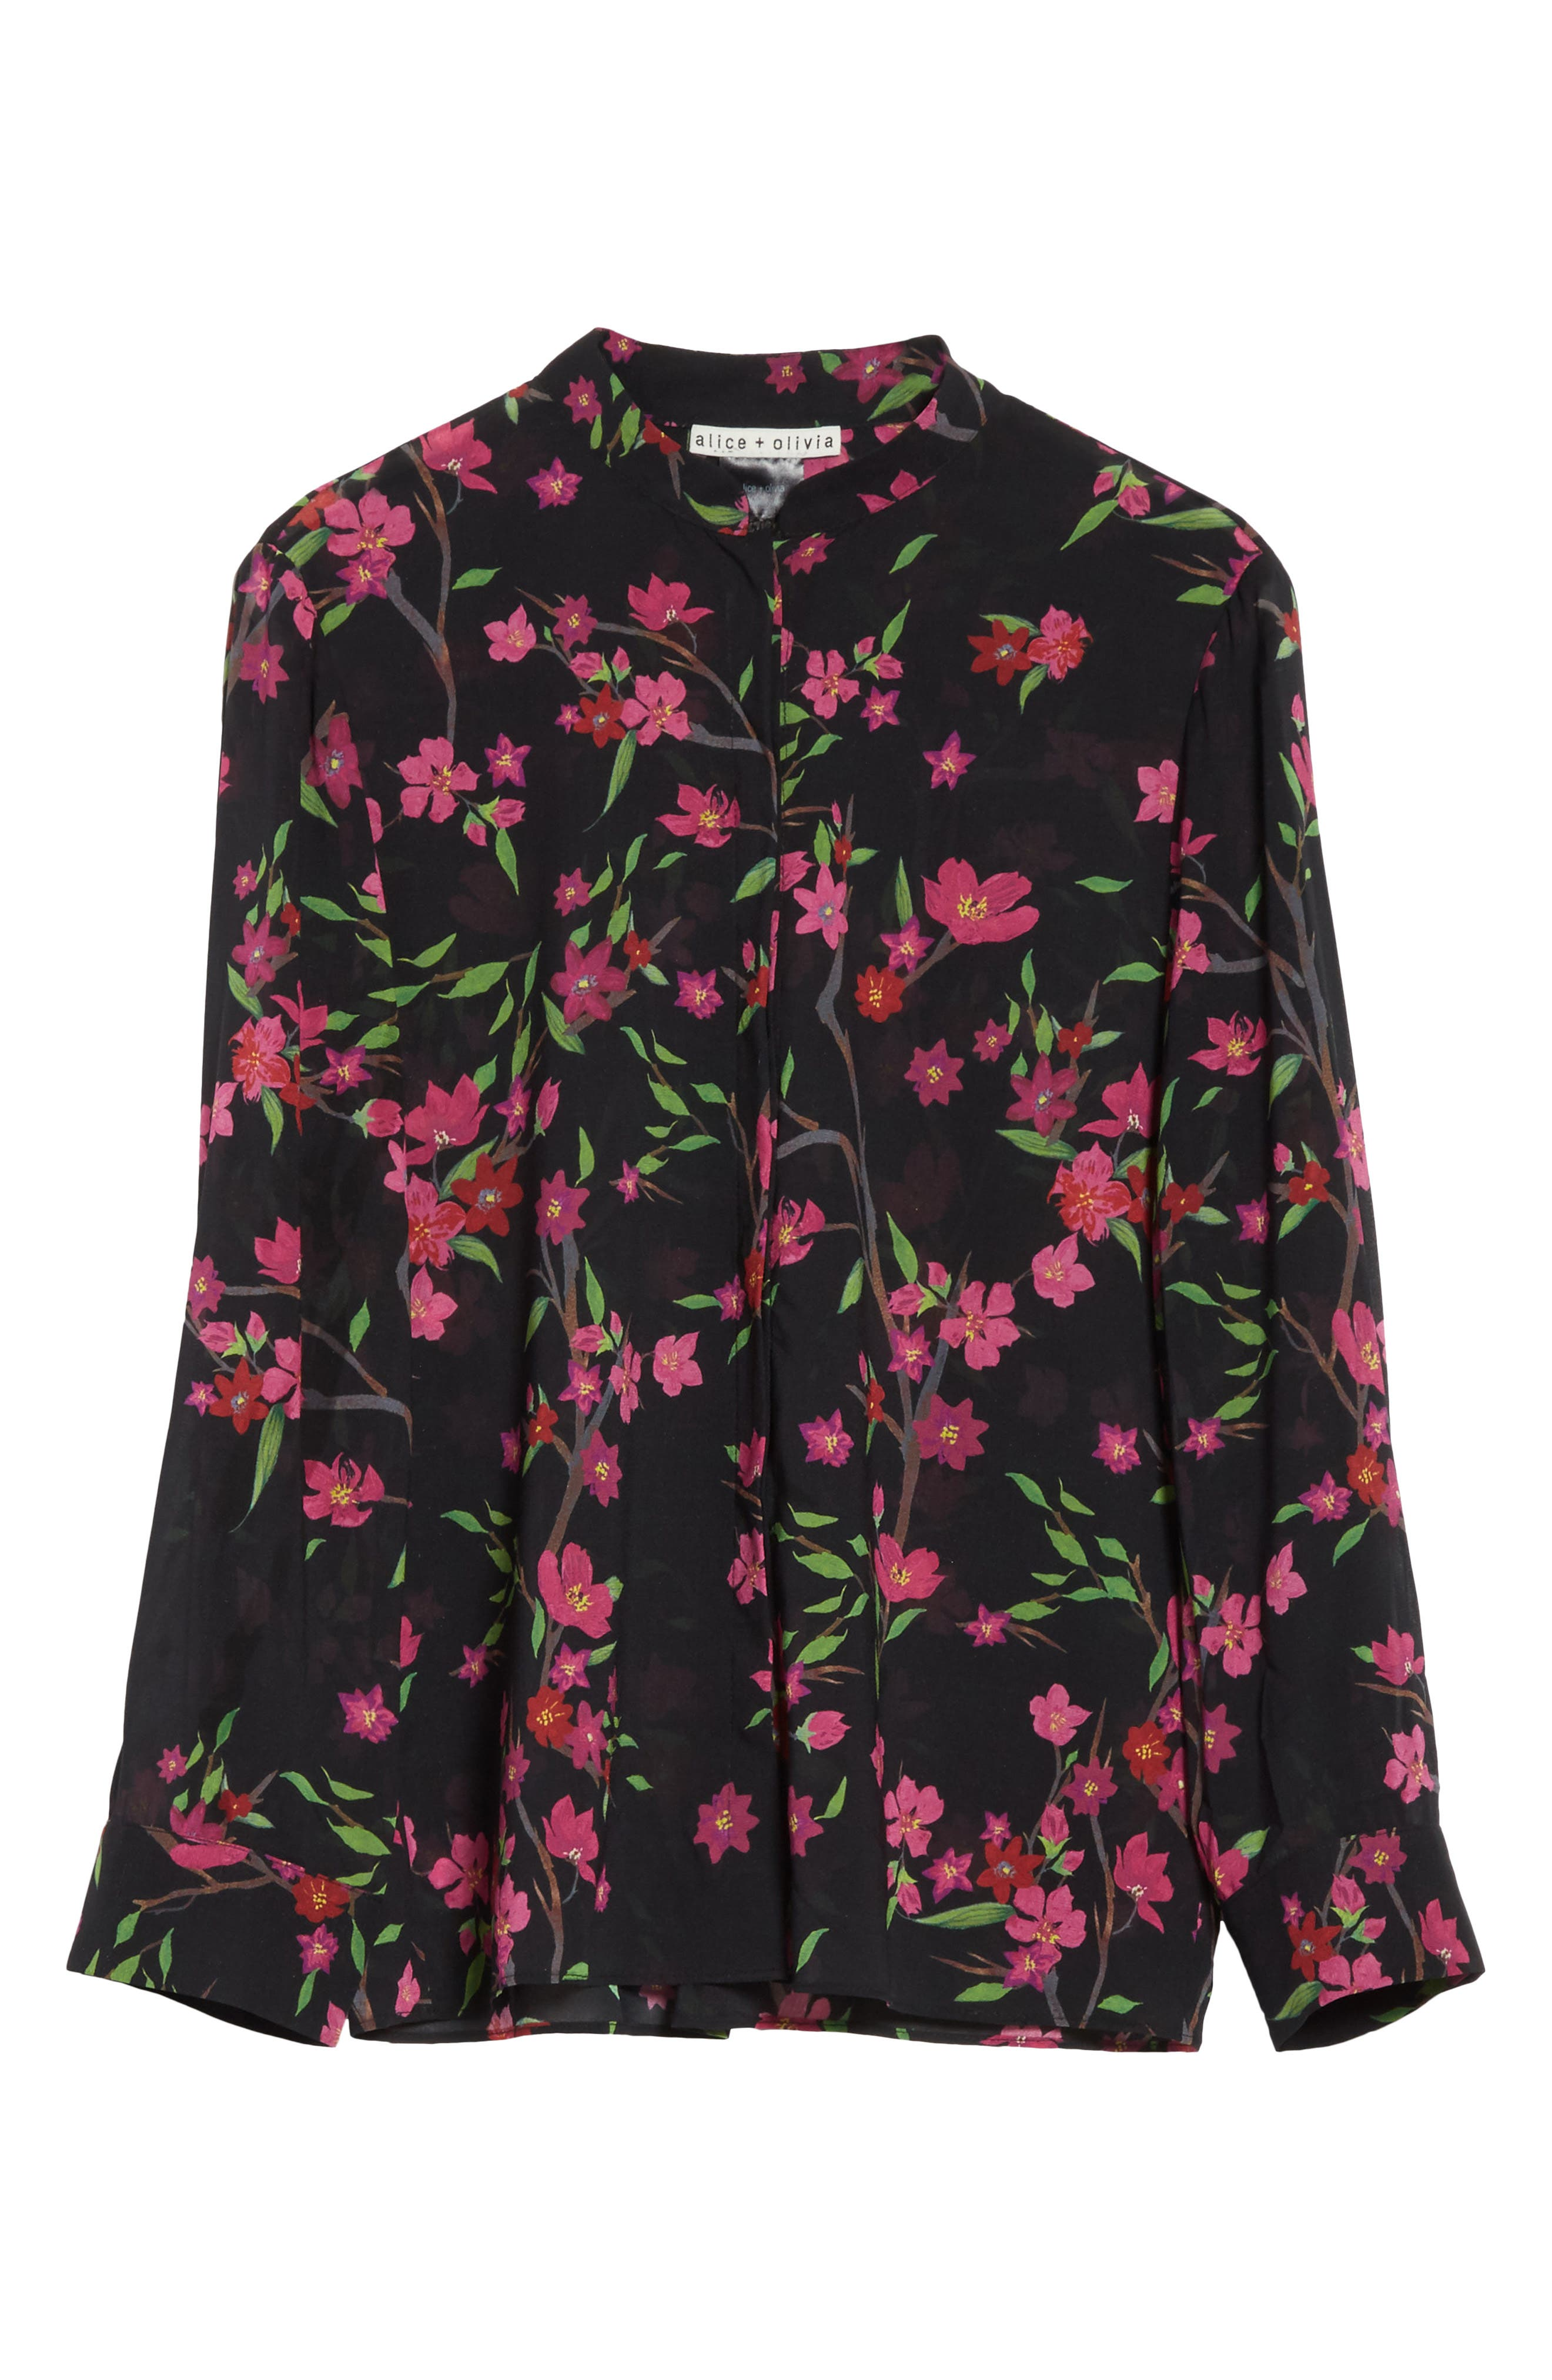 Eloise Mandarin Collar Blouse,                             Alternate thumbnail 7, color,                             Sakura Floral/ Black